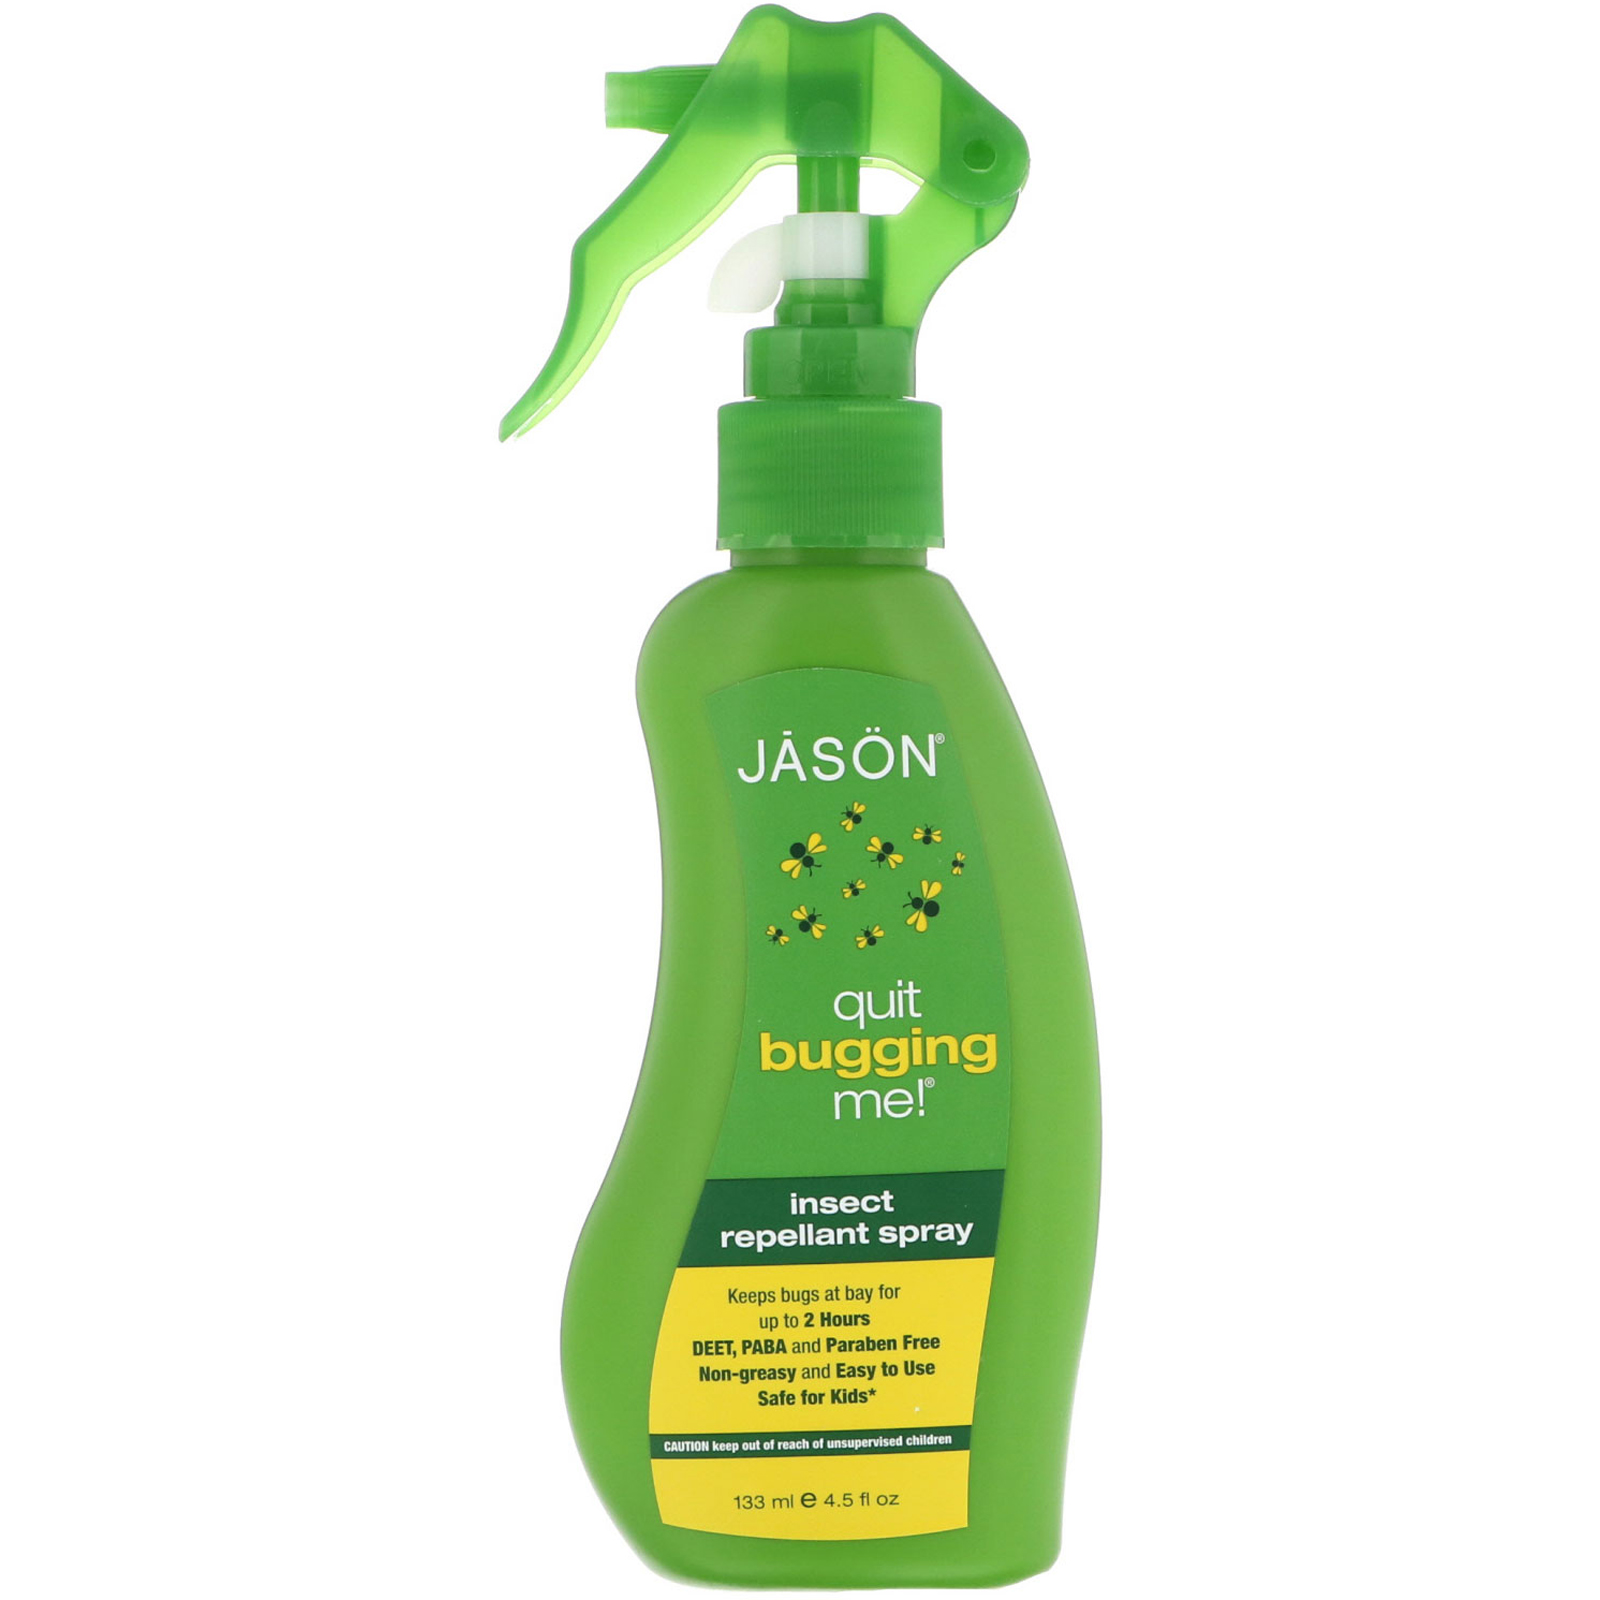 Jason Natural, Quit Bugging Me!, Insect Repellant Spray, 4 5 fl oz